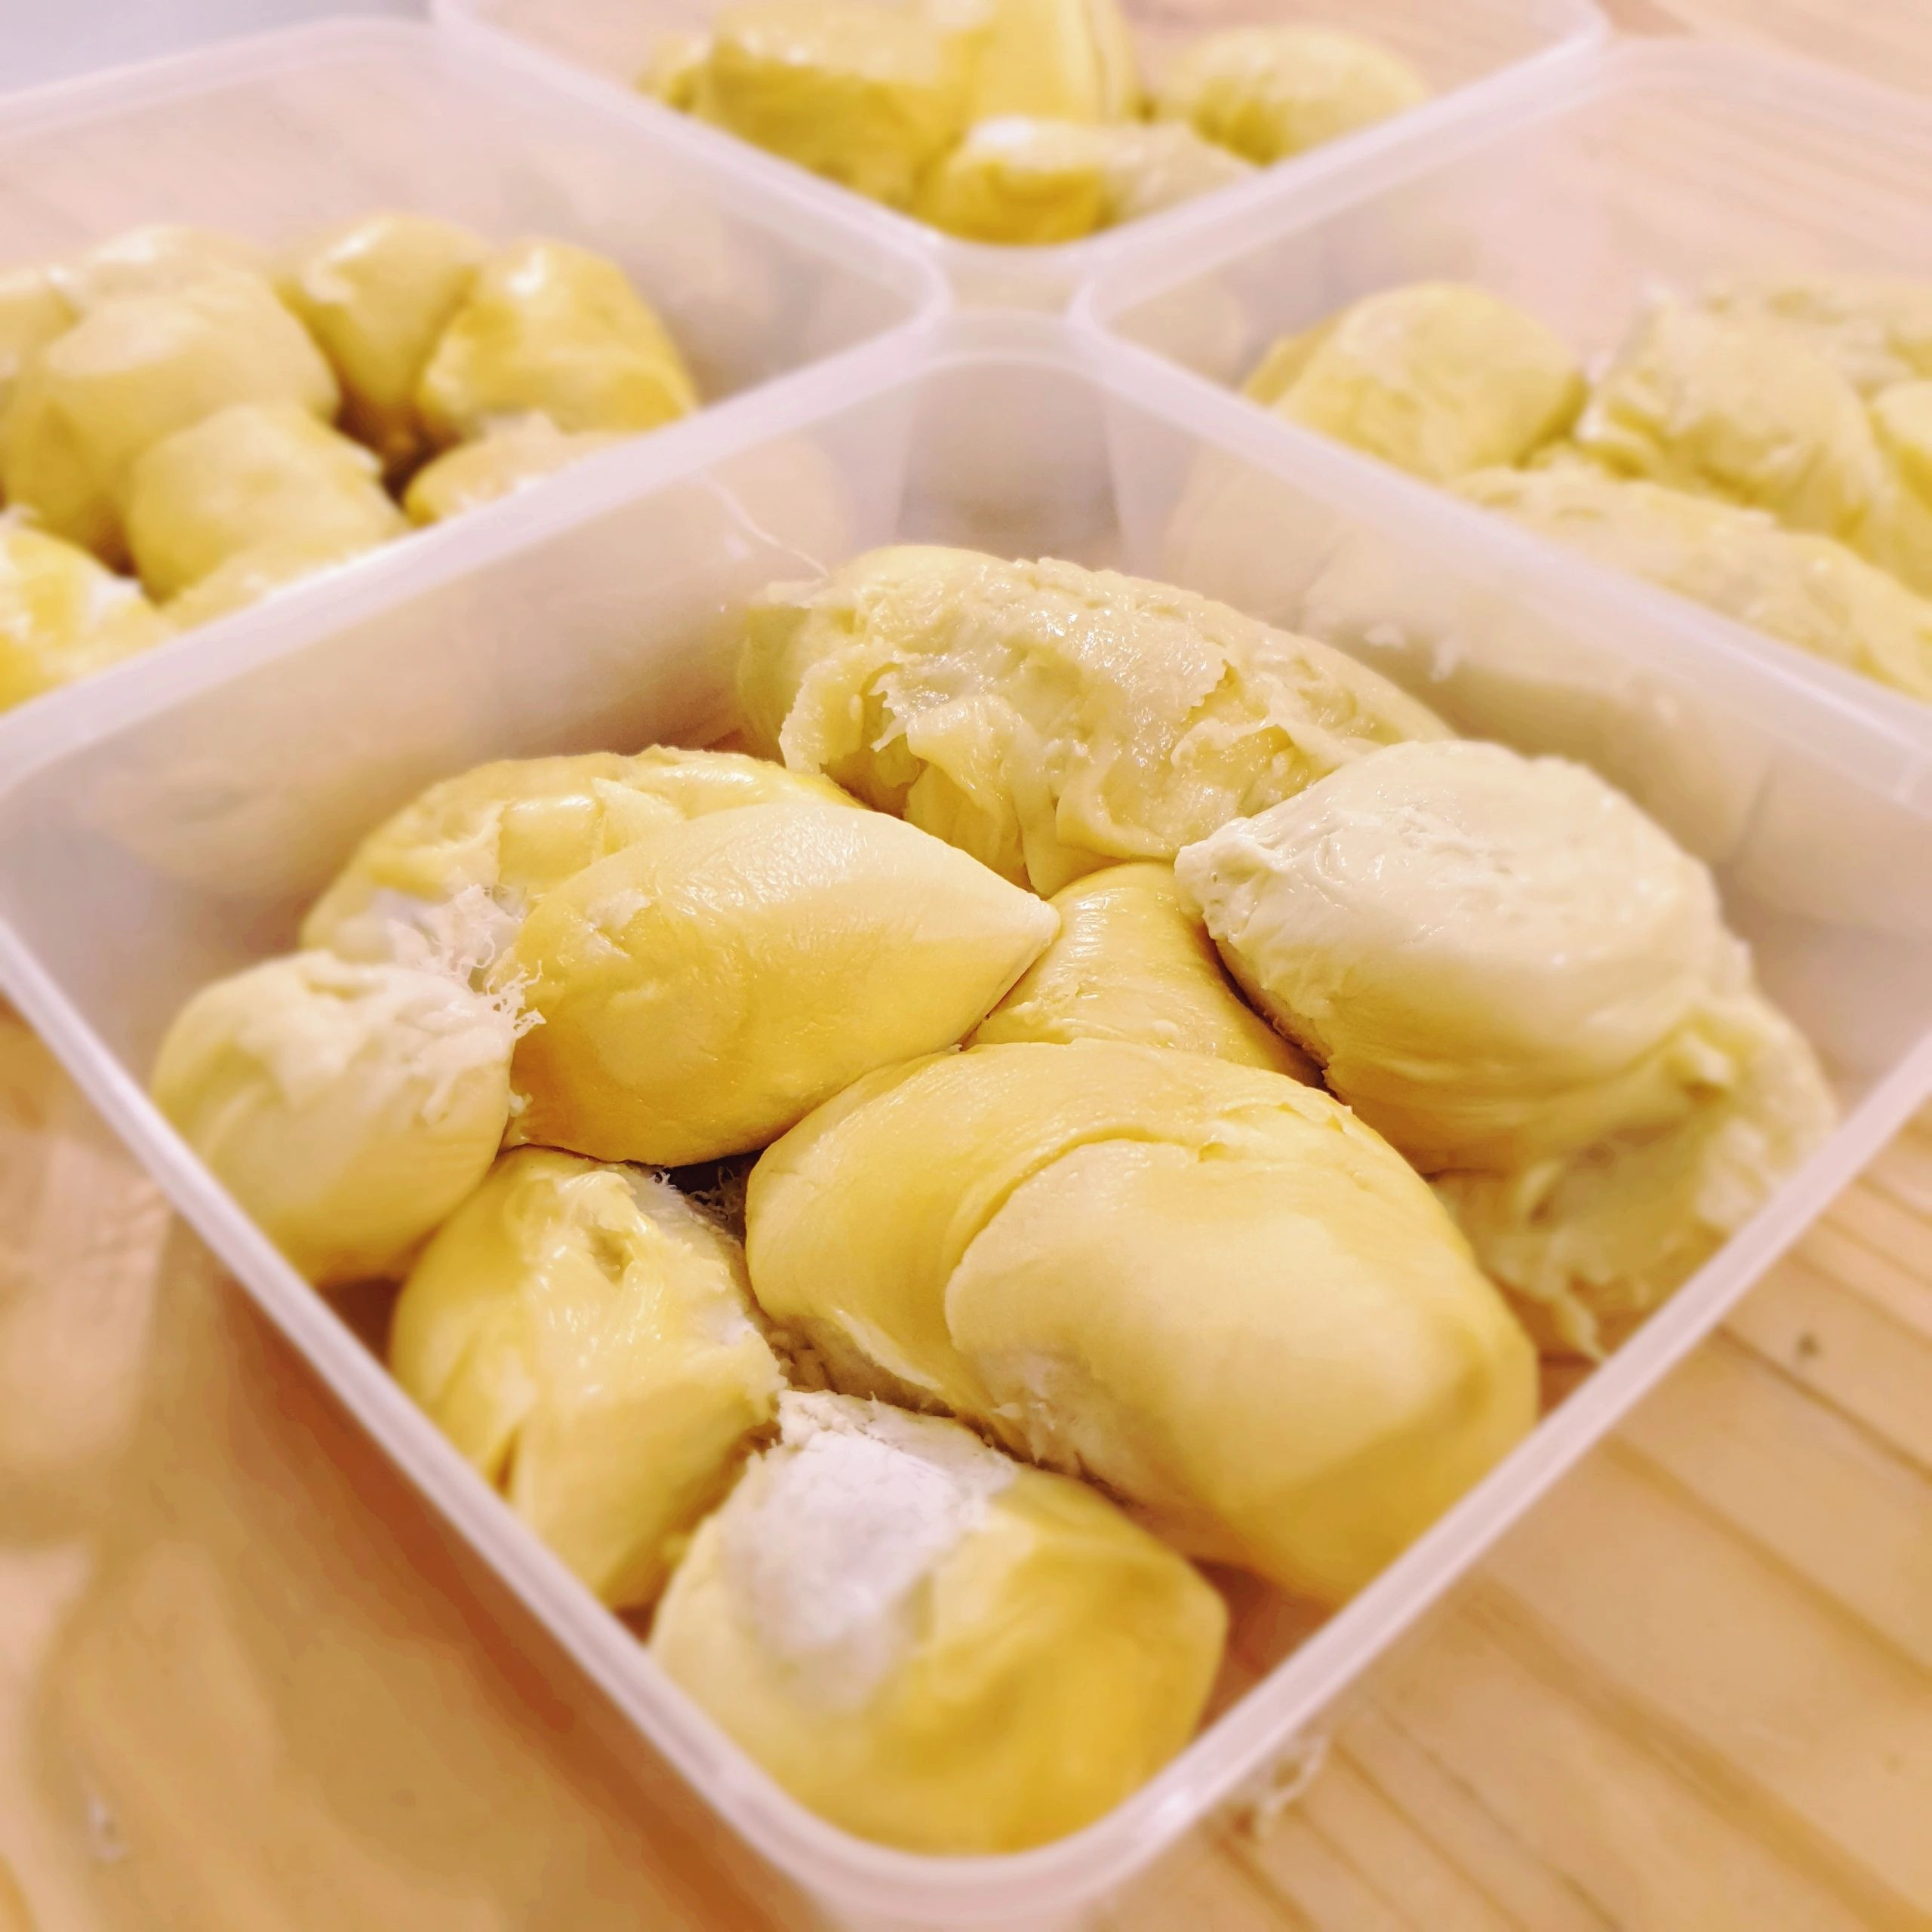 Geylang Durian Delivery, Singapore Durian Delivery, Online Durian Shop, Best Durian Singapore